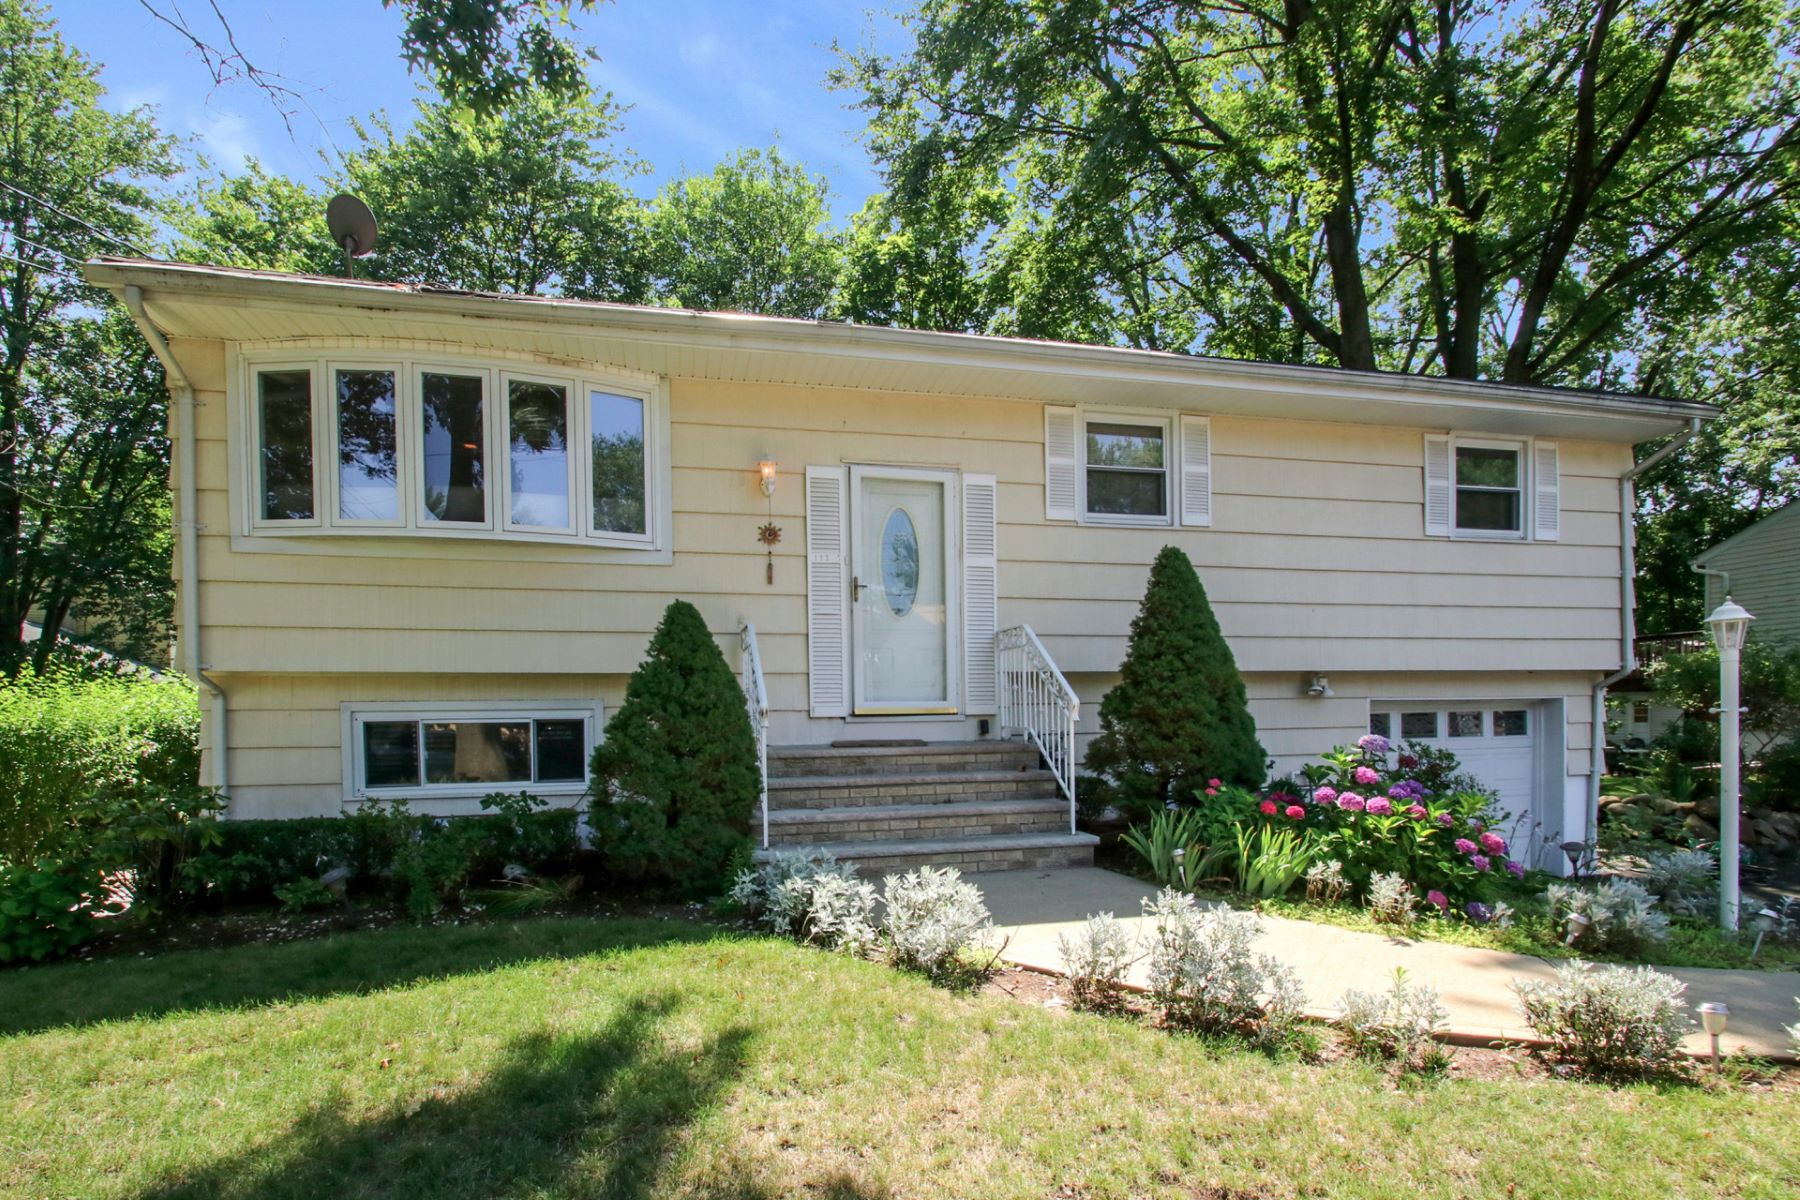 Maison unifamiliale pour l Vente à Completely Renovated 172 Washington St Northvale, New Jersey 07647 États-Unis